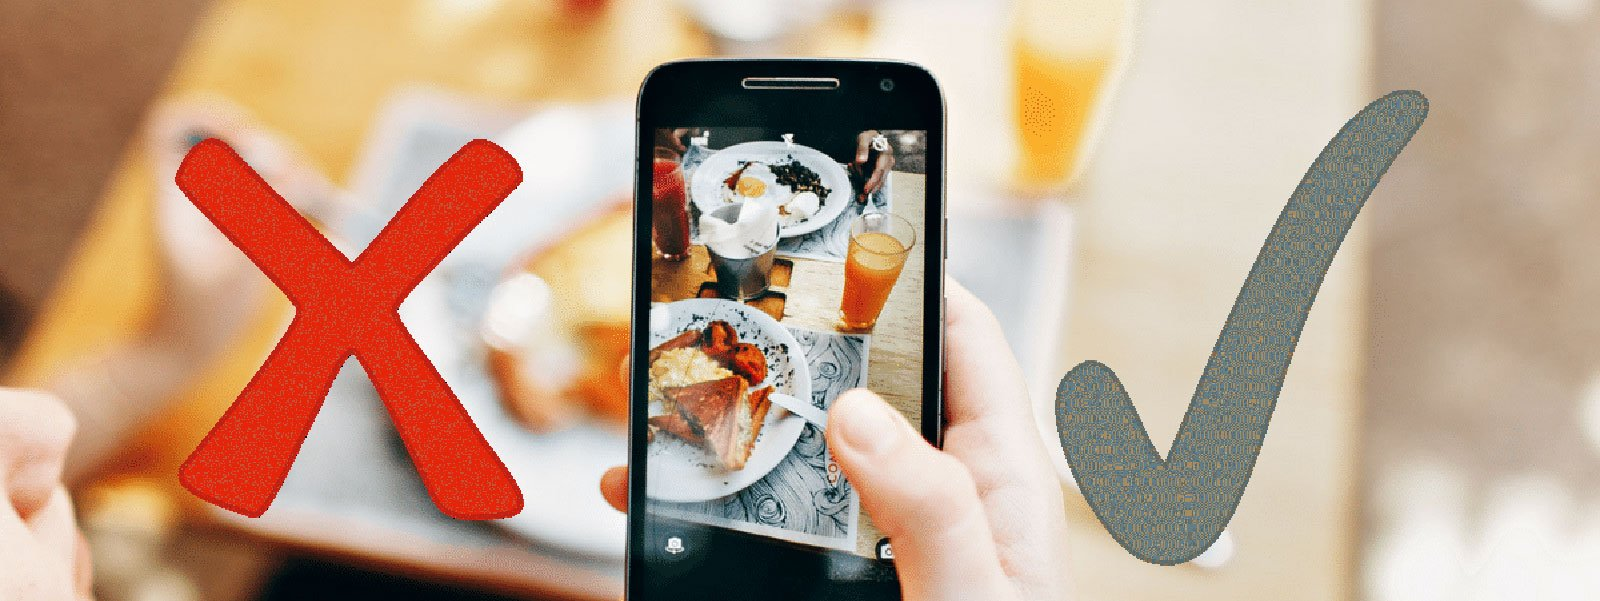 How to Make an Instagram Story the Right Way